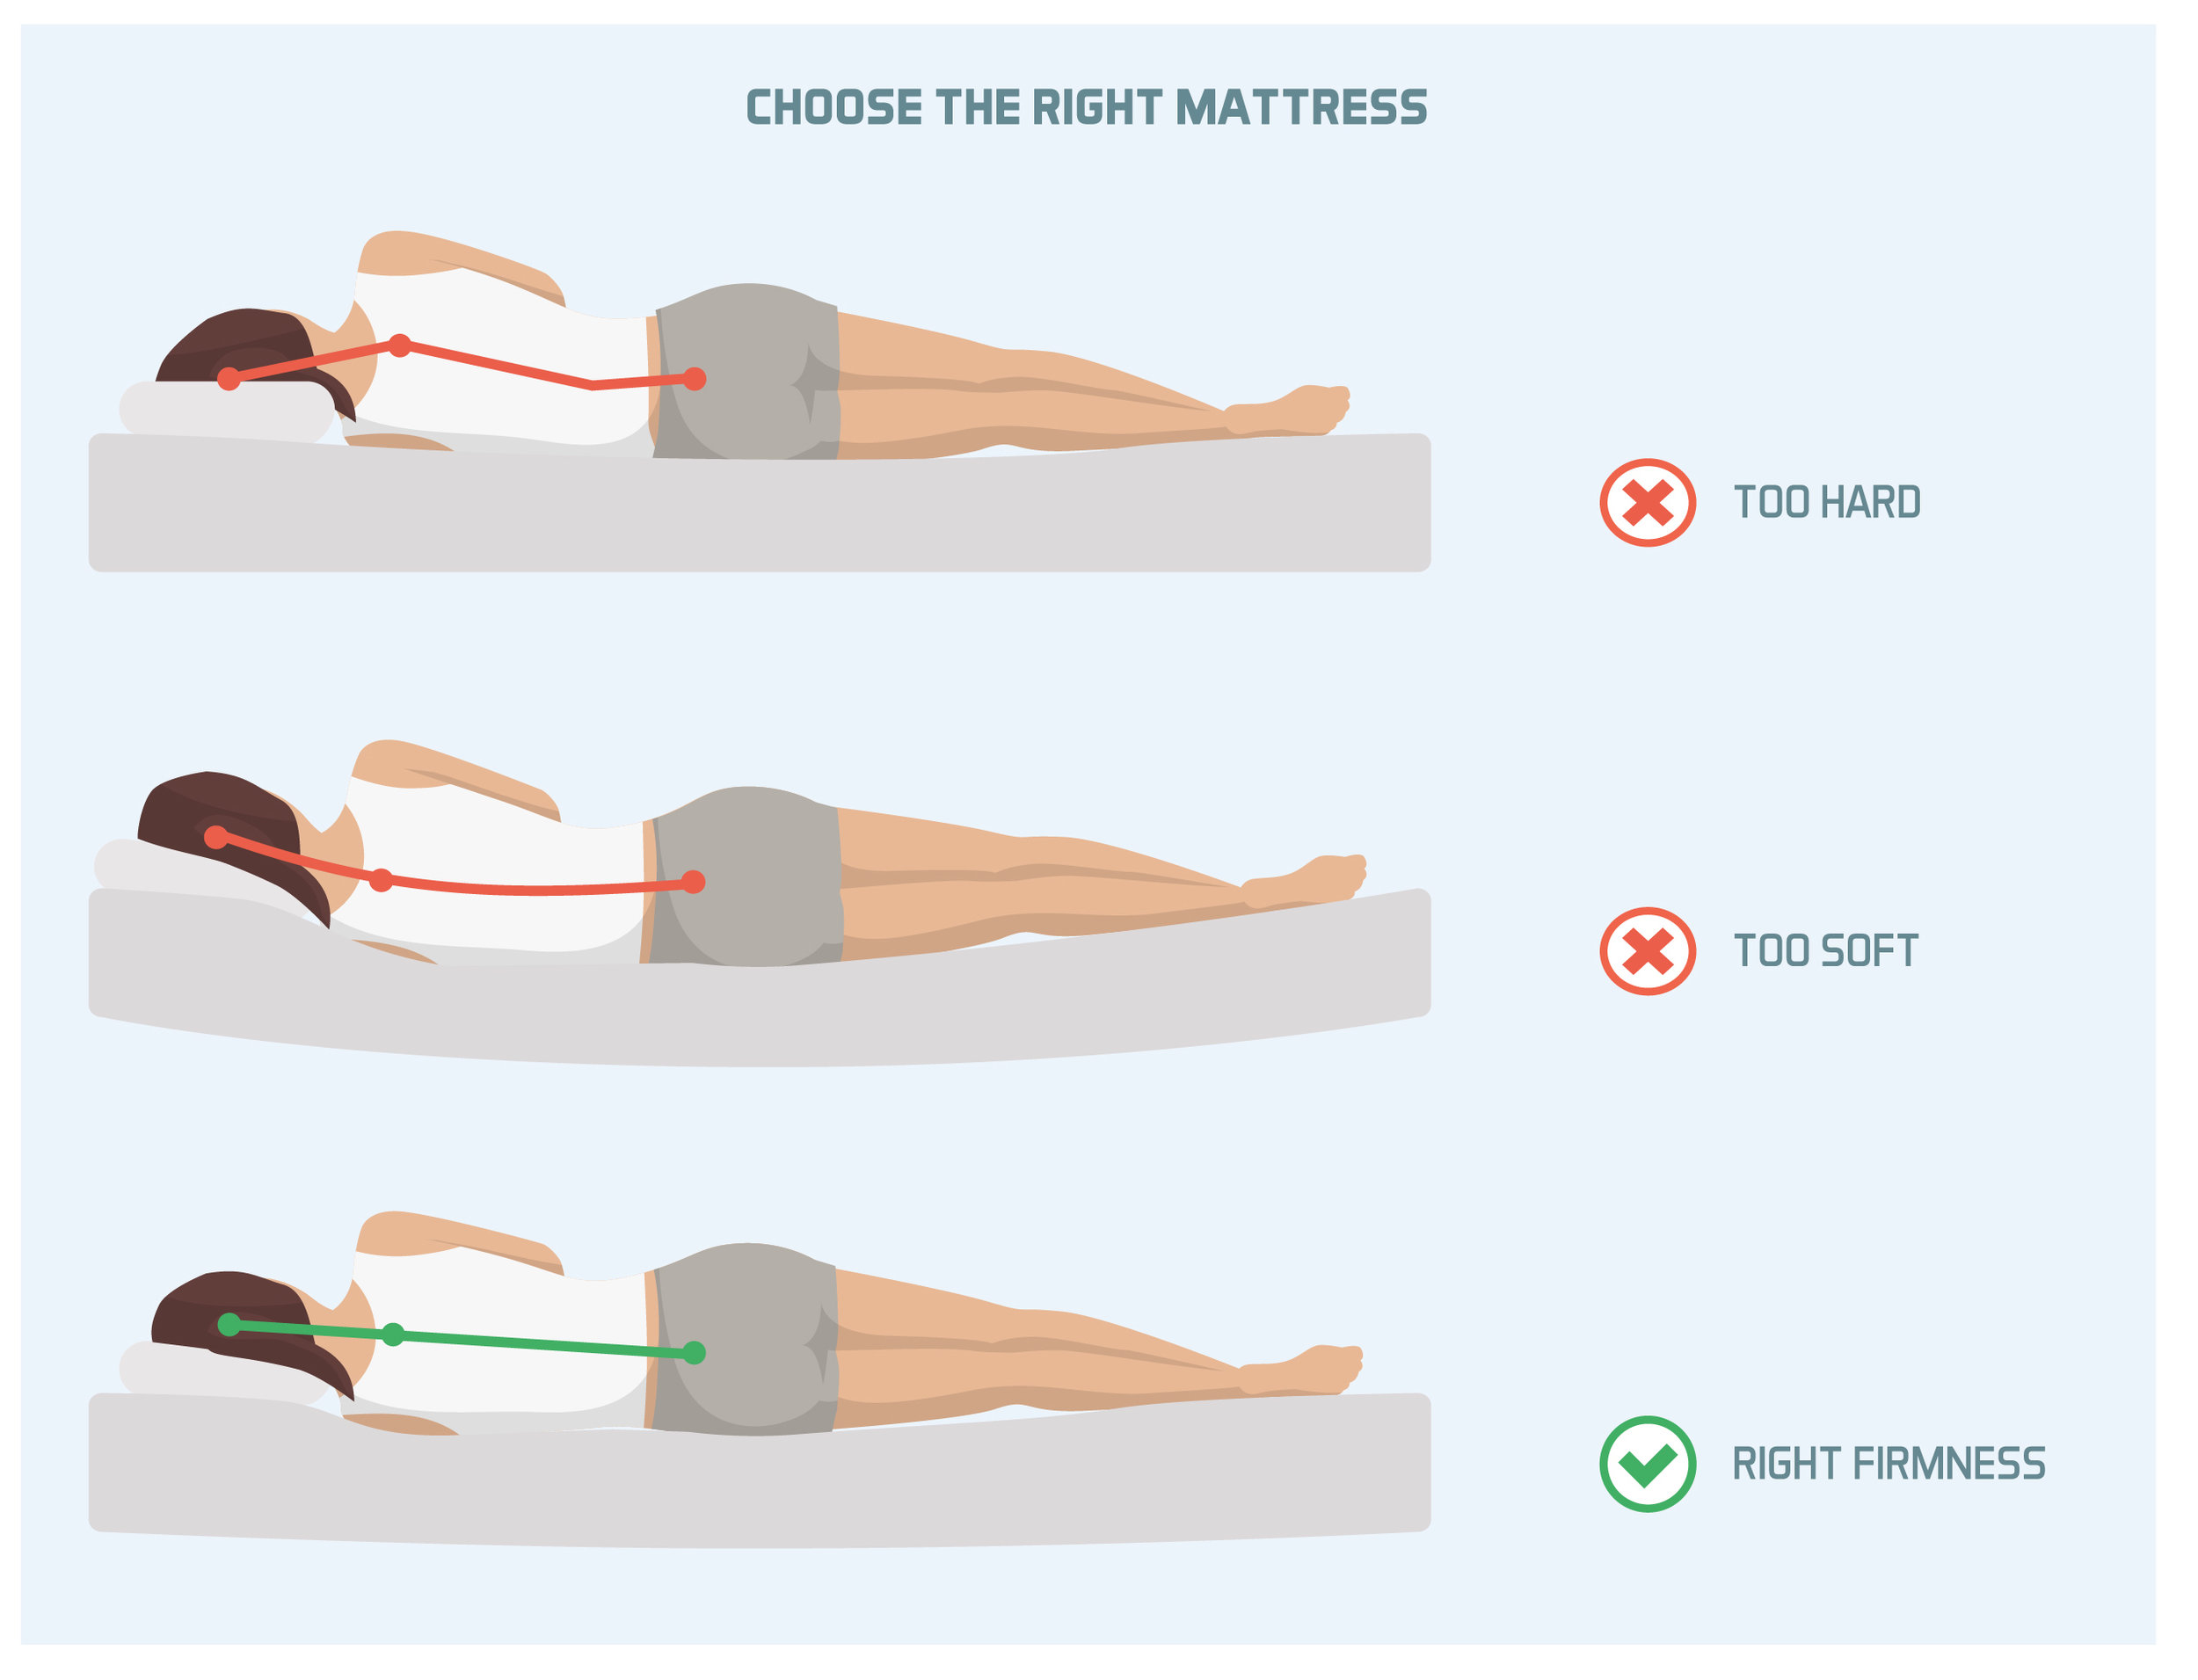 What Is The Best Sleeping Position Park West Chiropractic Dr Shawn Toner Clayton Park Bedford Halifax Area For Back Neck Pain